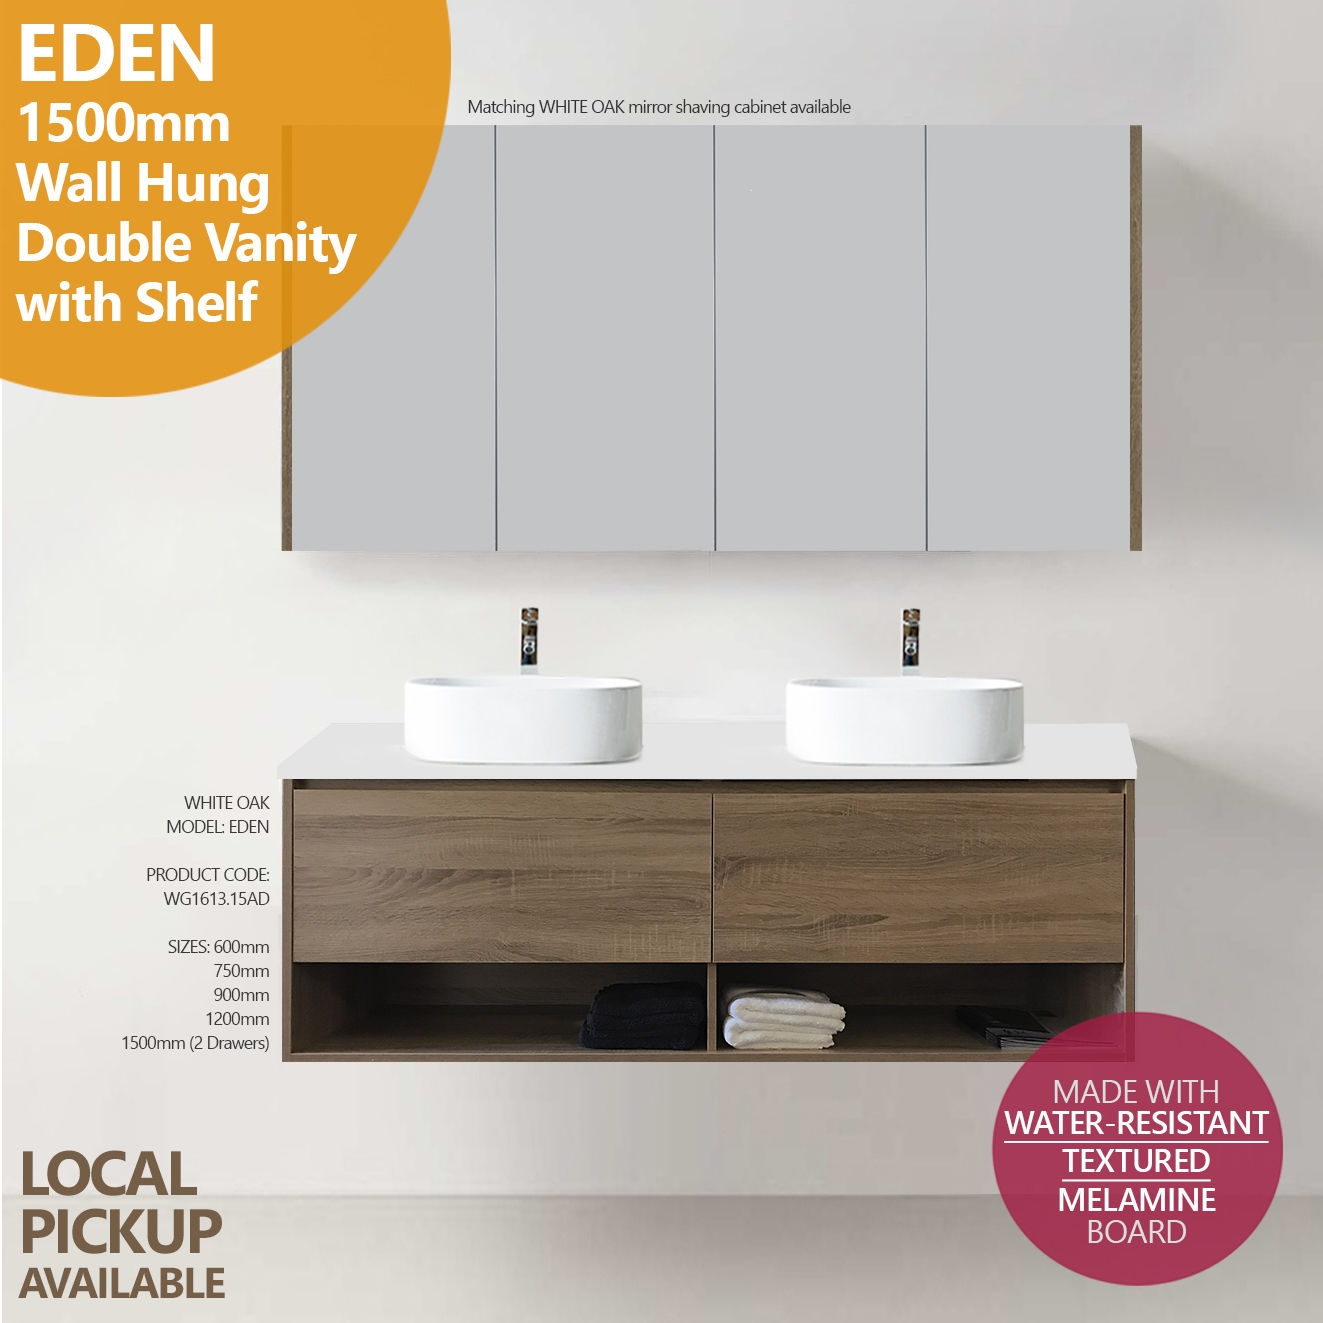 Eden 1500mm White Oak Pvc Timber Wood Grain Wall Hung Double Vanity With Stone Top Homegear Australia